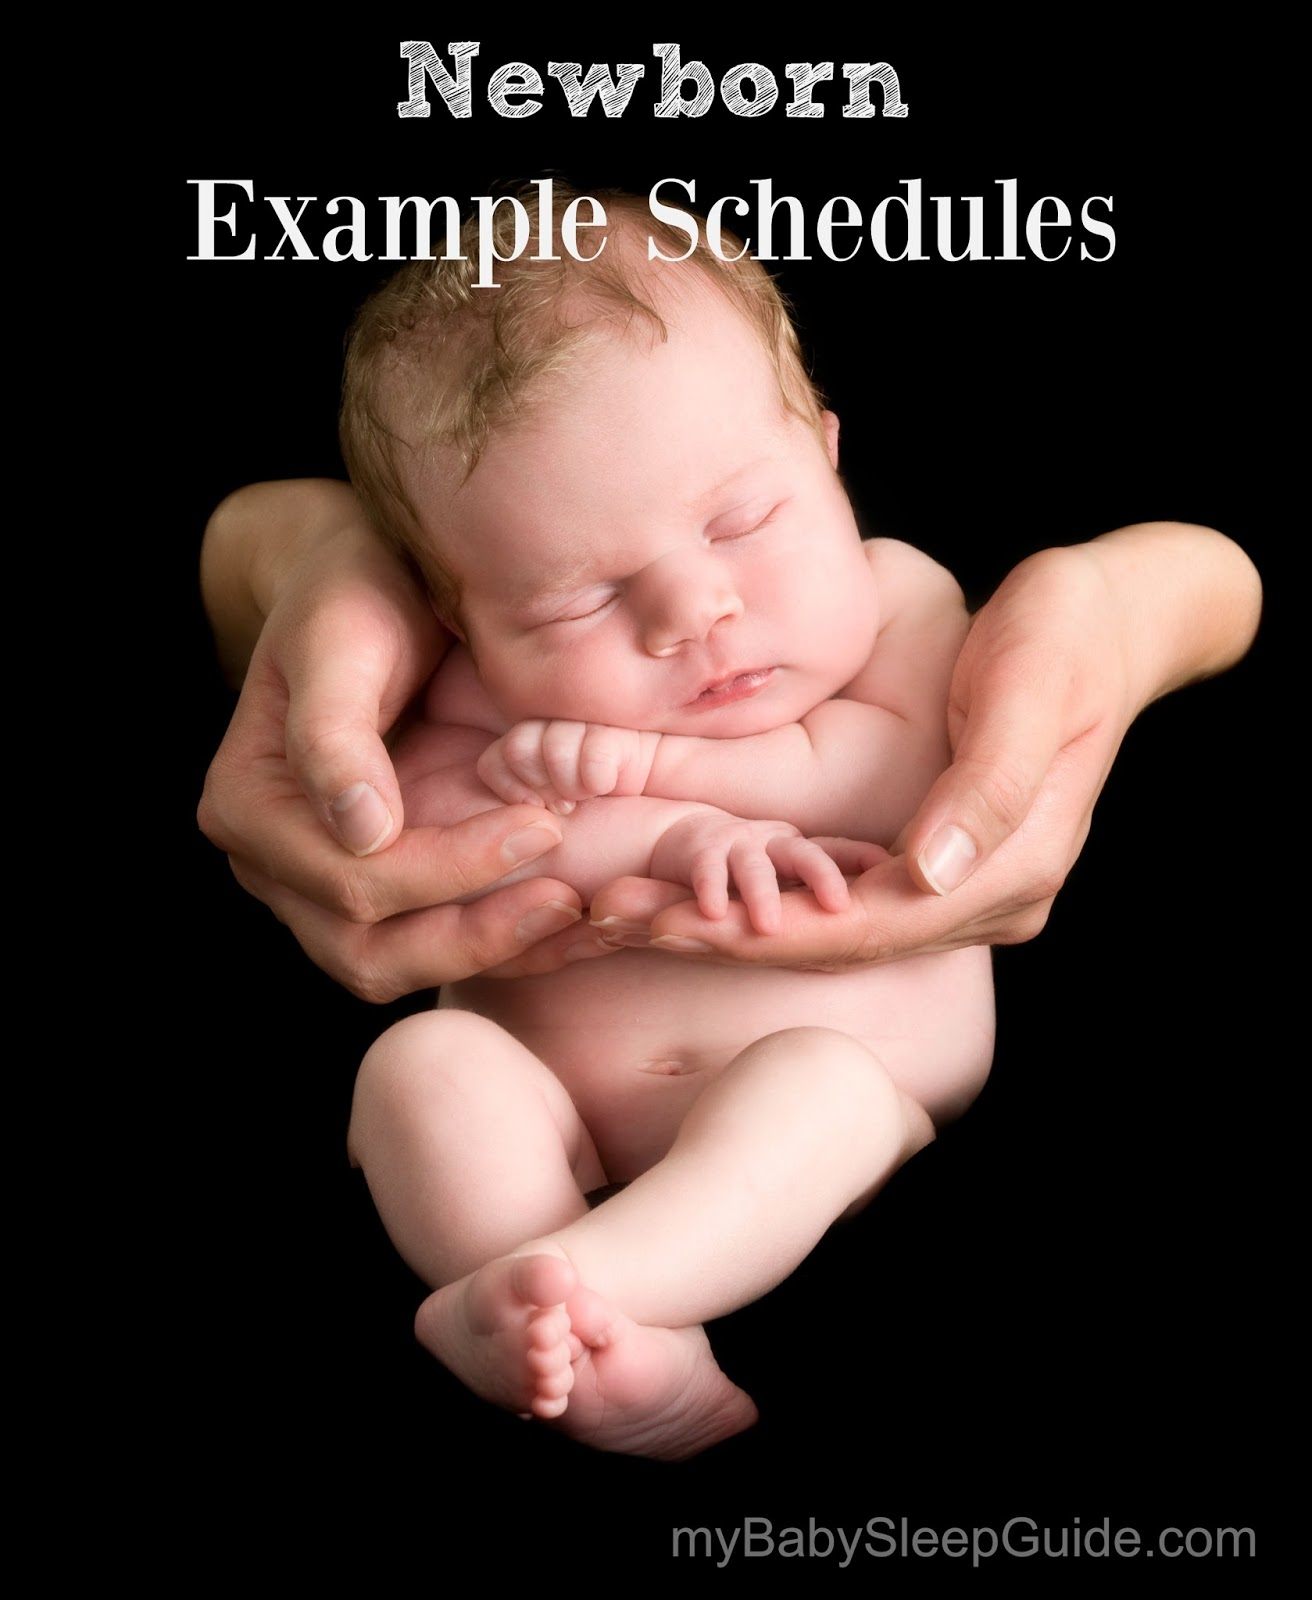 Newborn Sleep Newborn Sample Schedules My Baby Sleep Guide Your Sleep